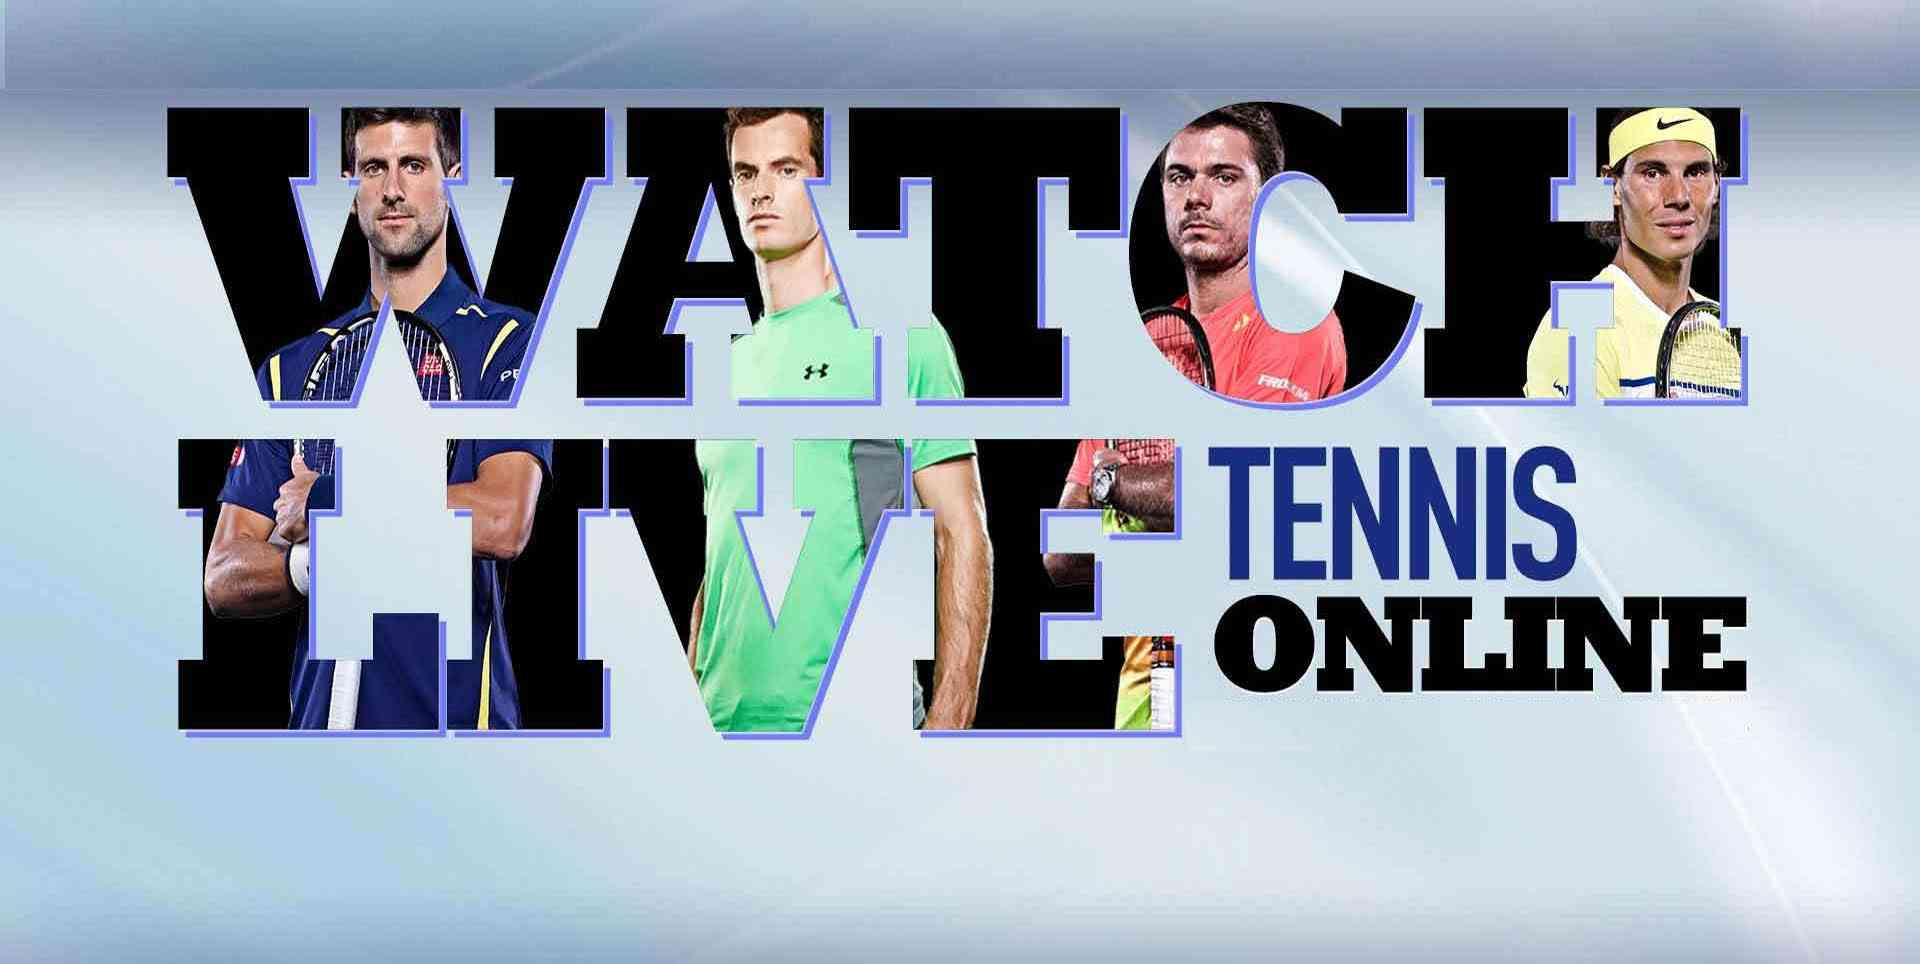 Live M. Raonic vs R. Federer Semi Final 2014 Wimbledon Streaming